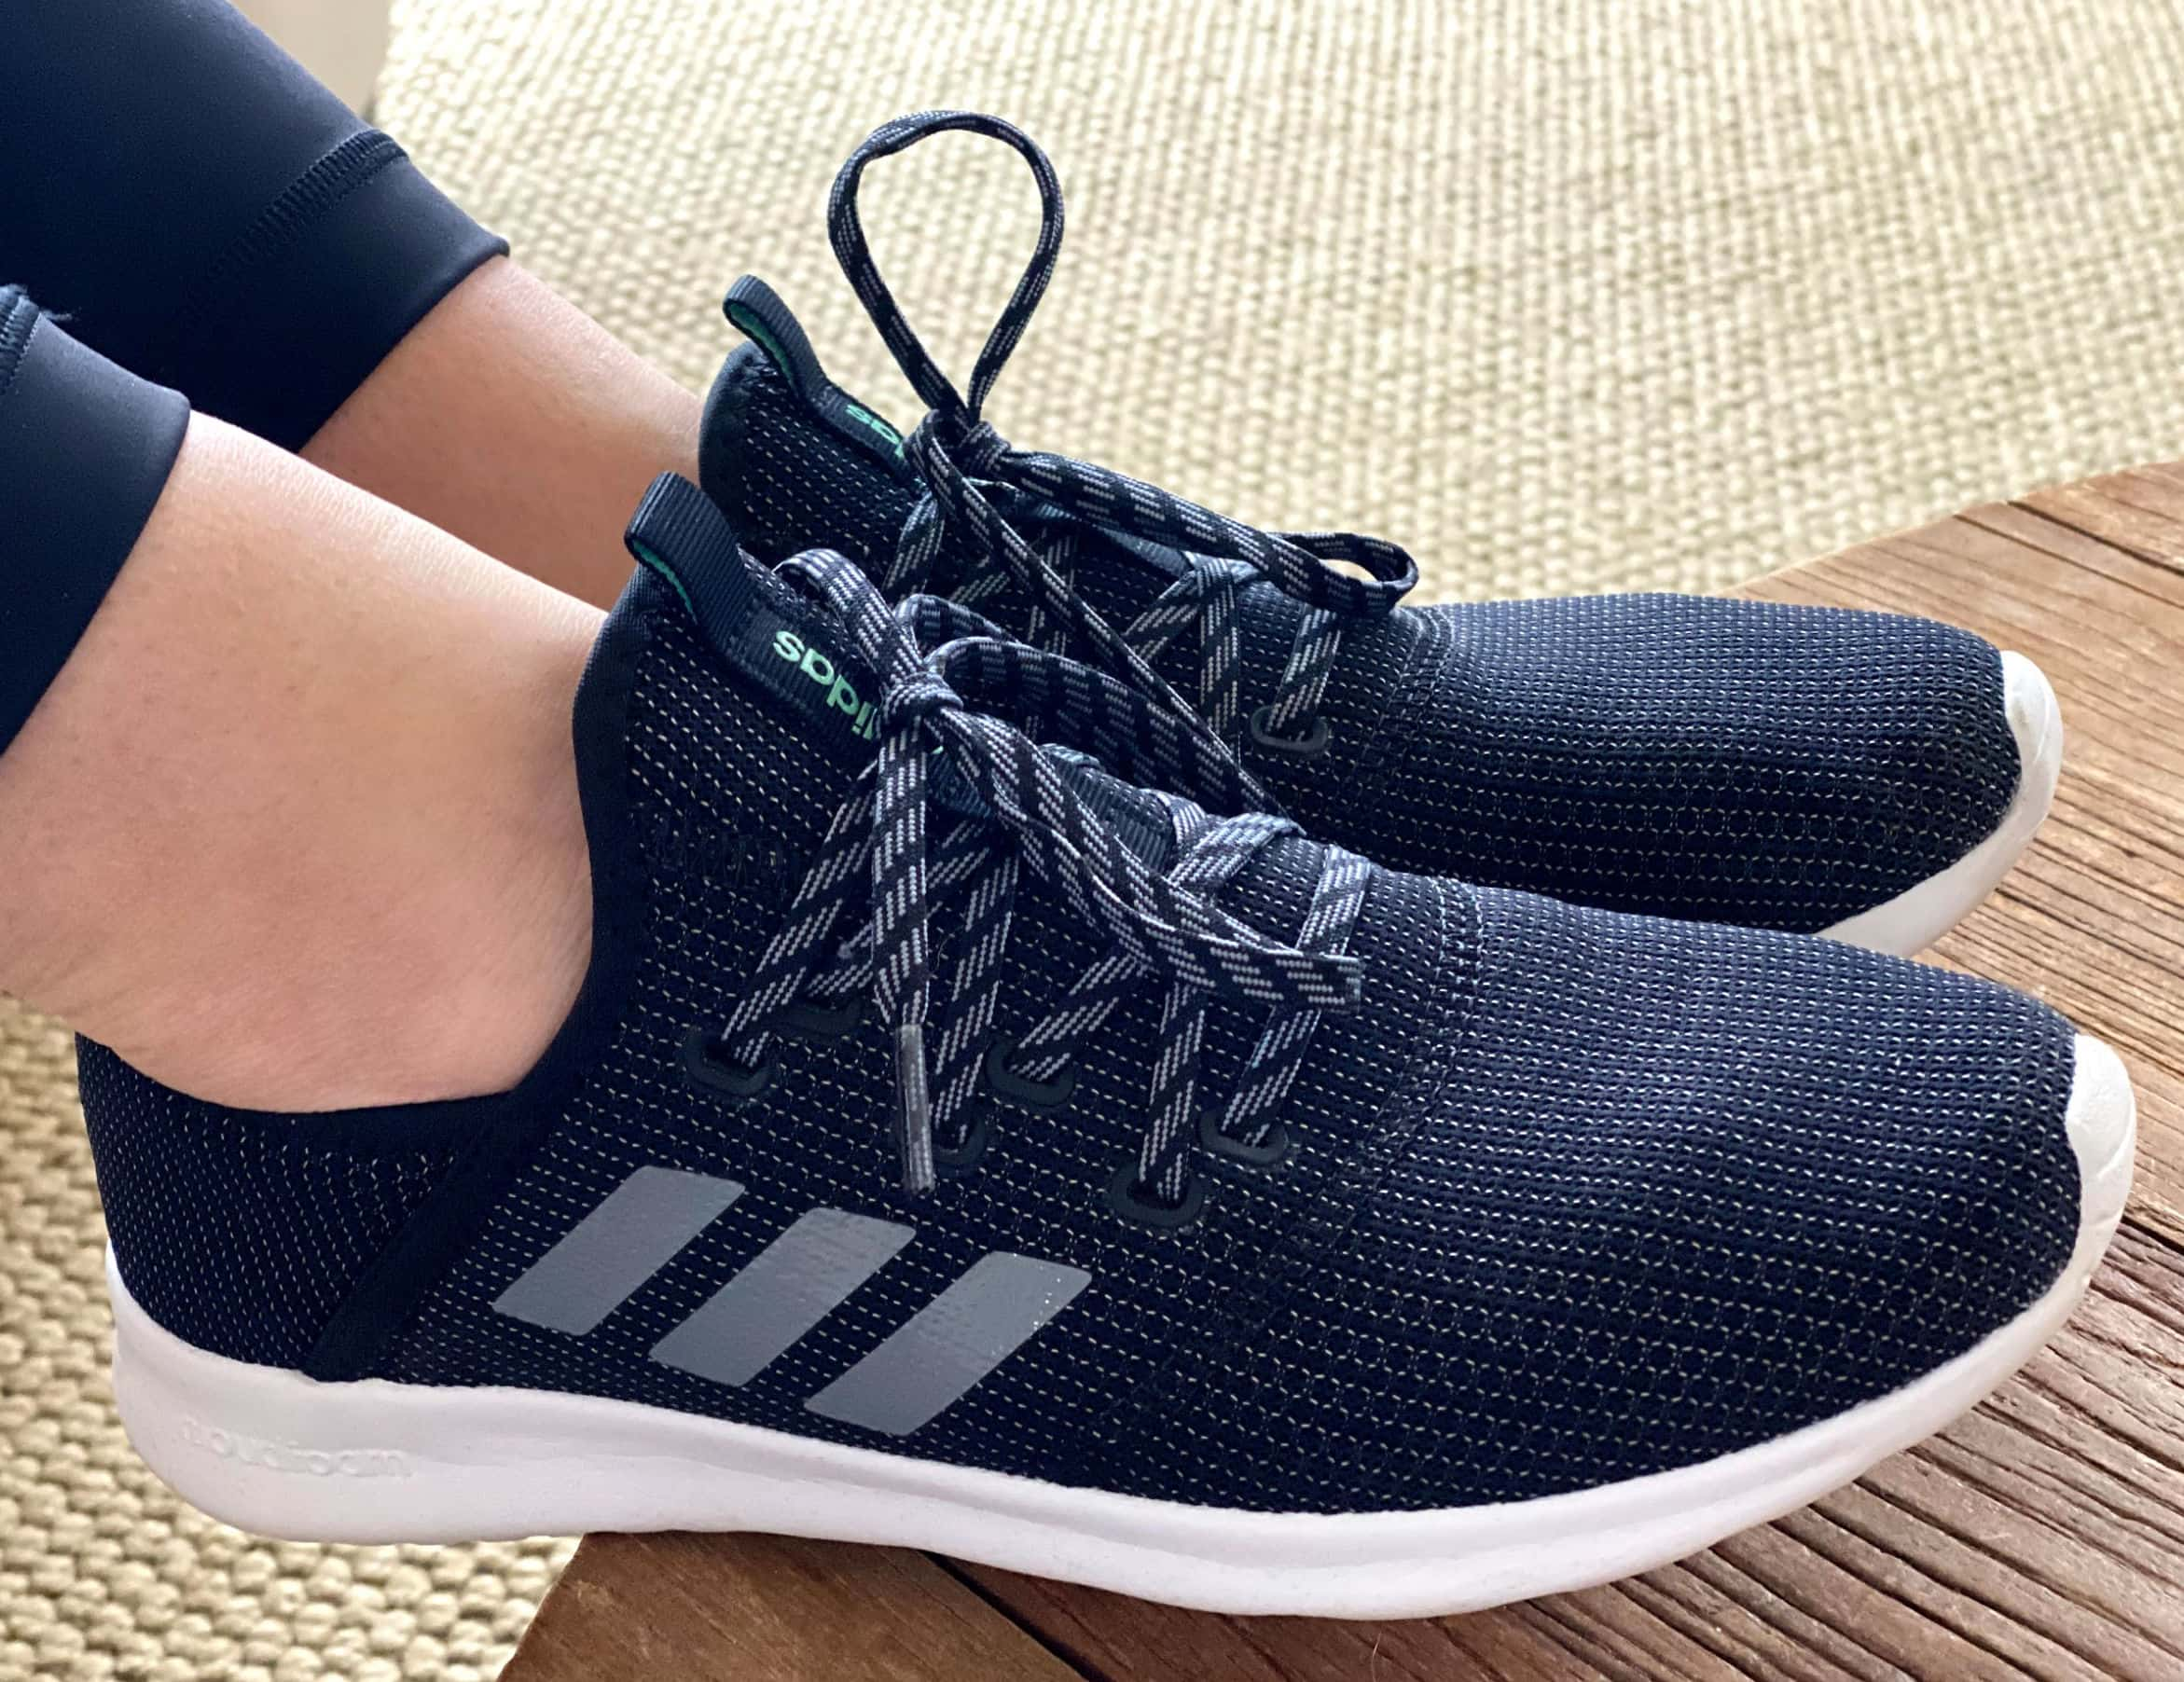 Kohl's Adidas: The Must Have List for